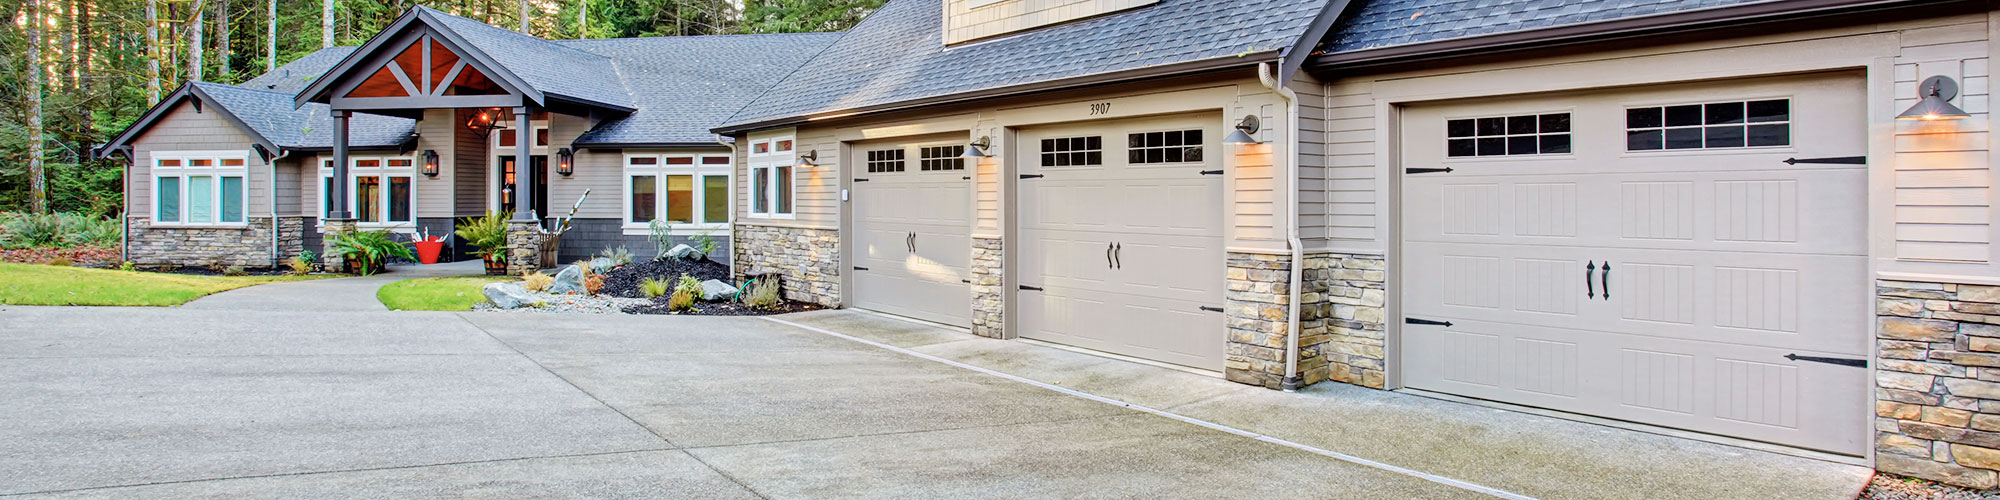 Garage Door Repair Encino Ca 19 Svc 818 861 4151